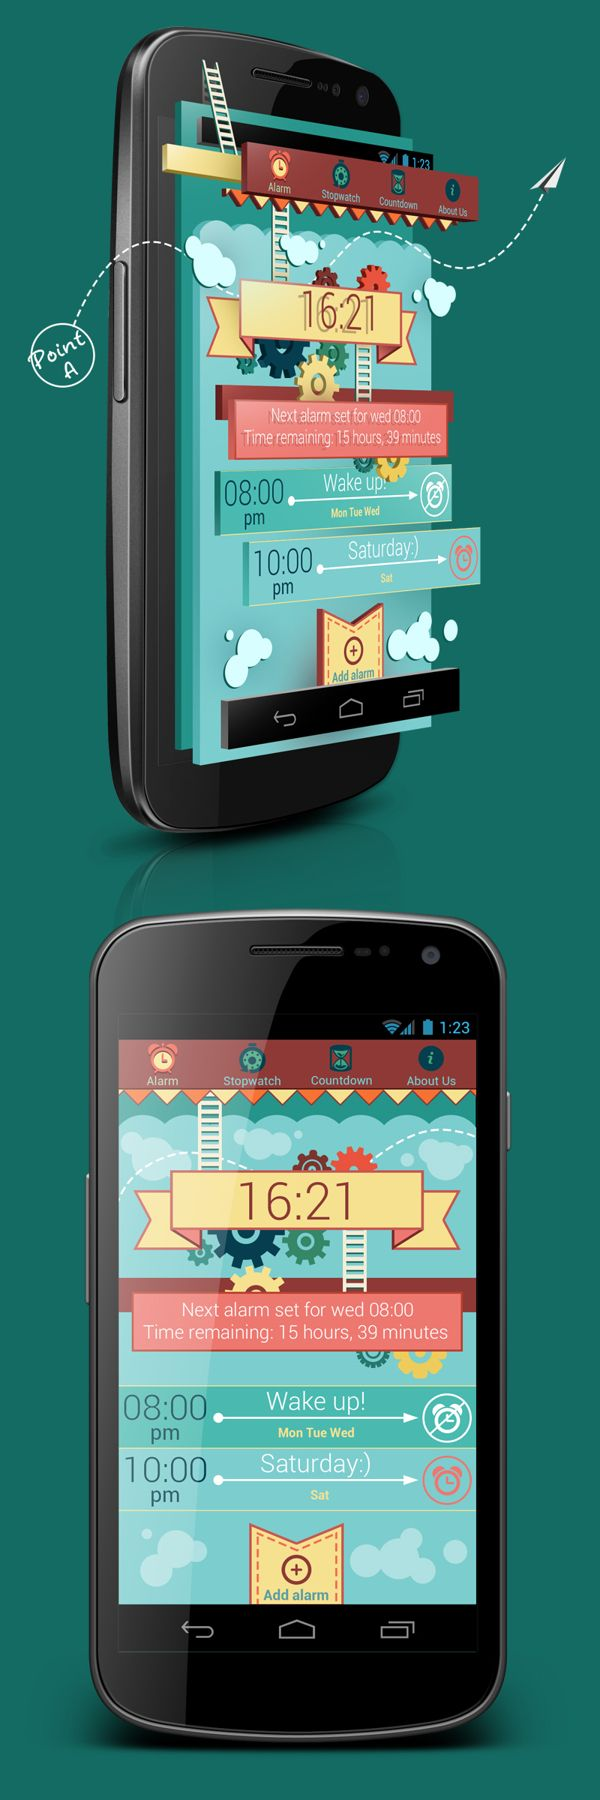 Budila by Sergey Valiukh, via Behance Tendances Iscomigoo Webdesign http://iscomigoo-webdesign.blogspot.fr/